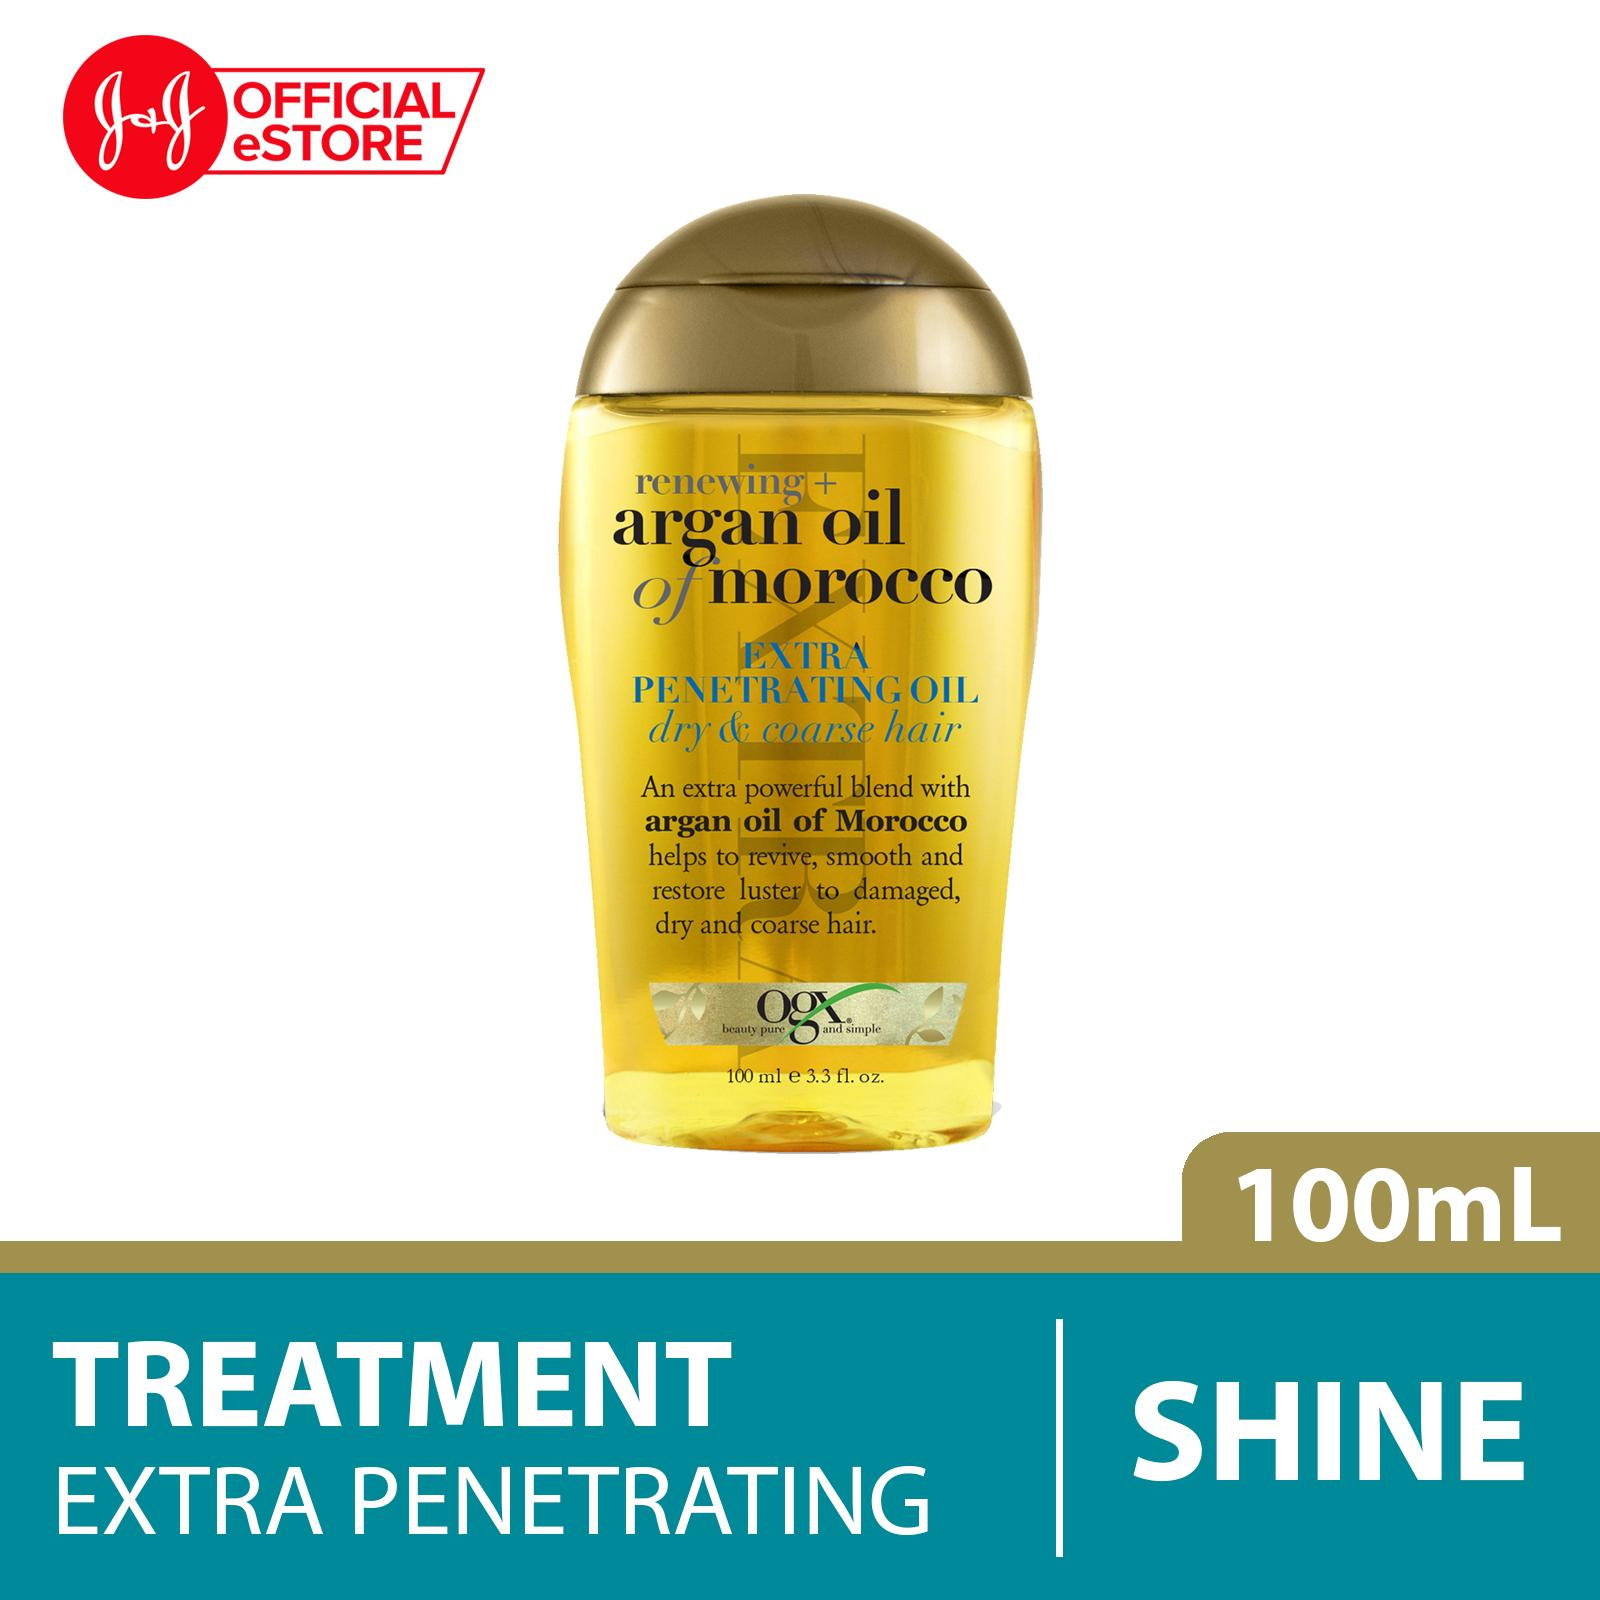 Ogx Renewing Argan Oil Morocco Extra Penetrating Oil 100ml By Johnson & Johnson Official Store.